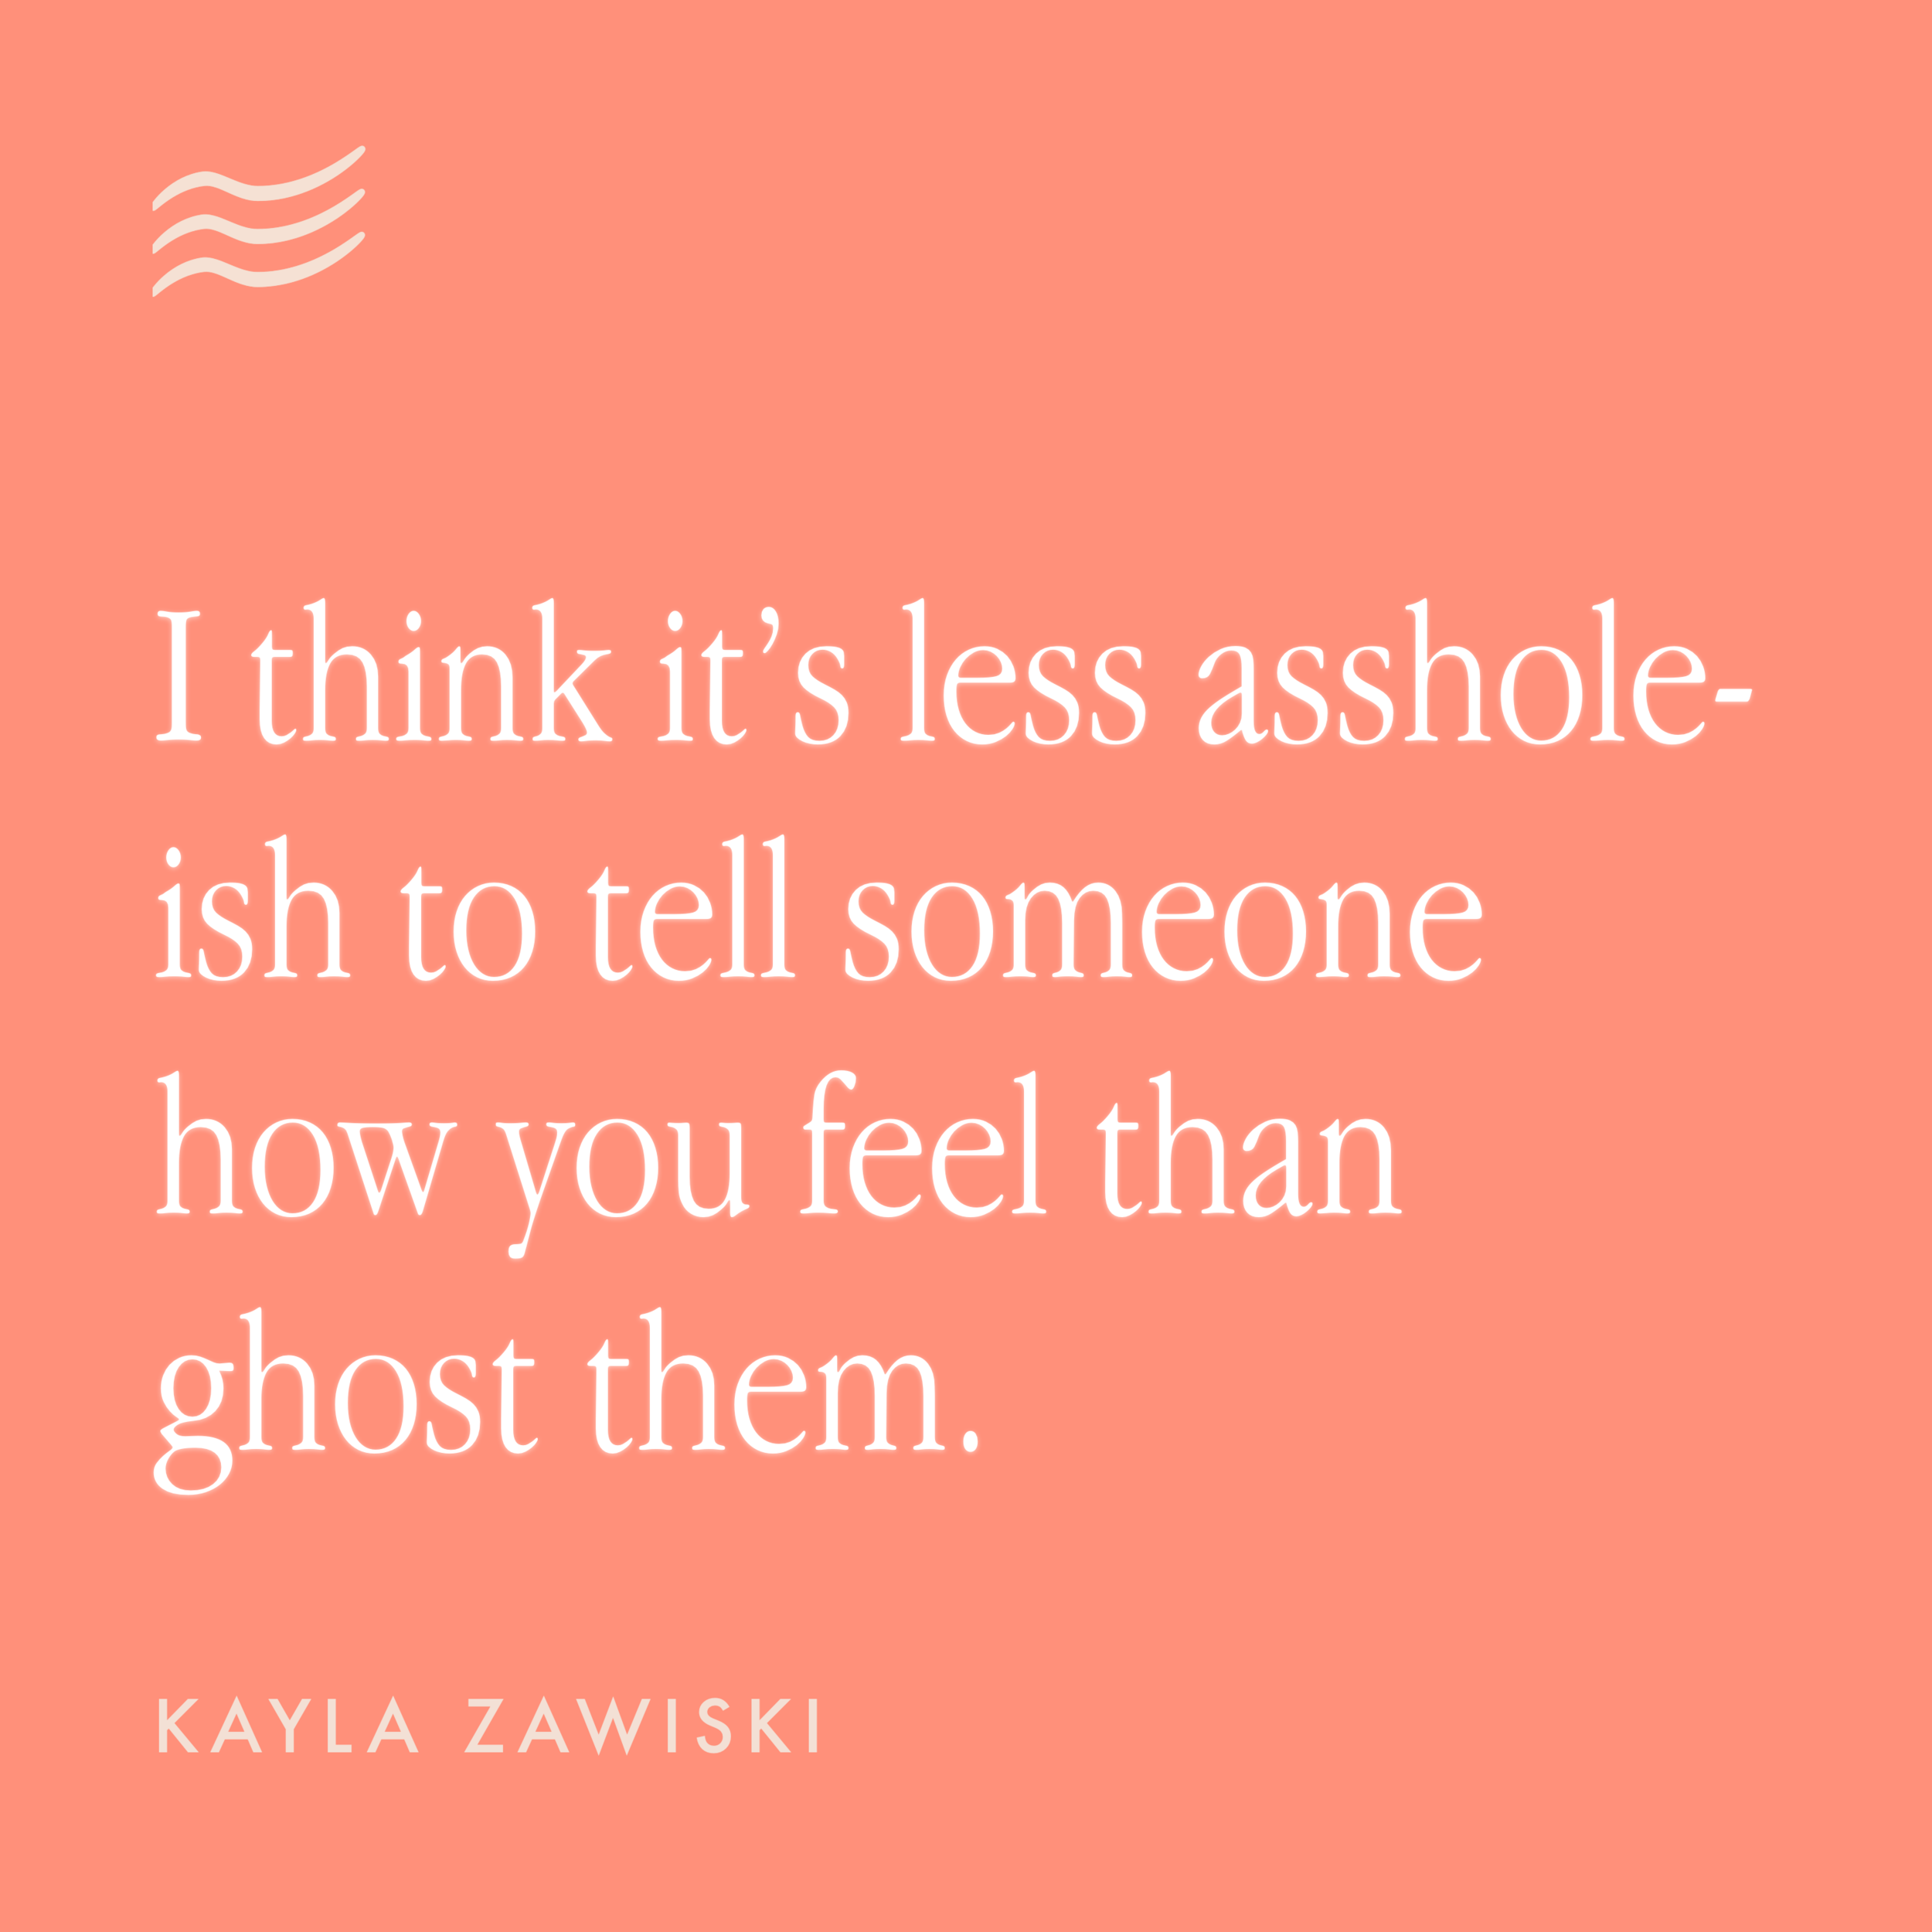 ghostin quote - kayla.png